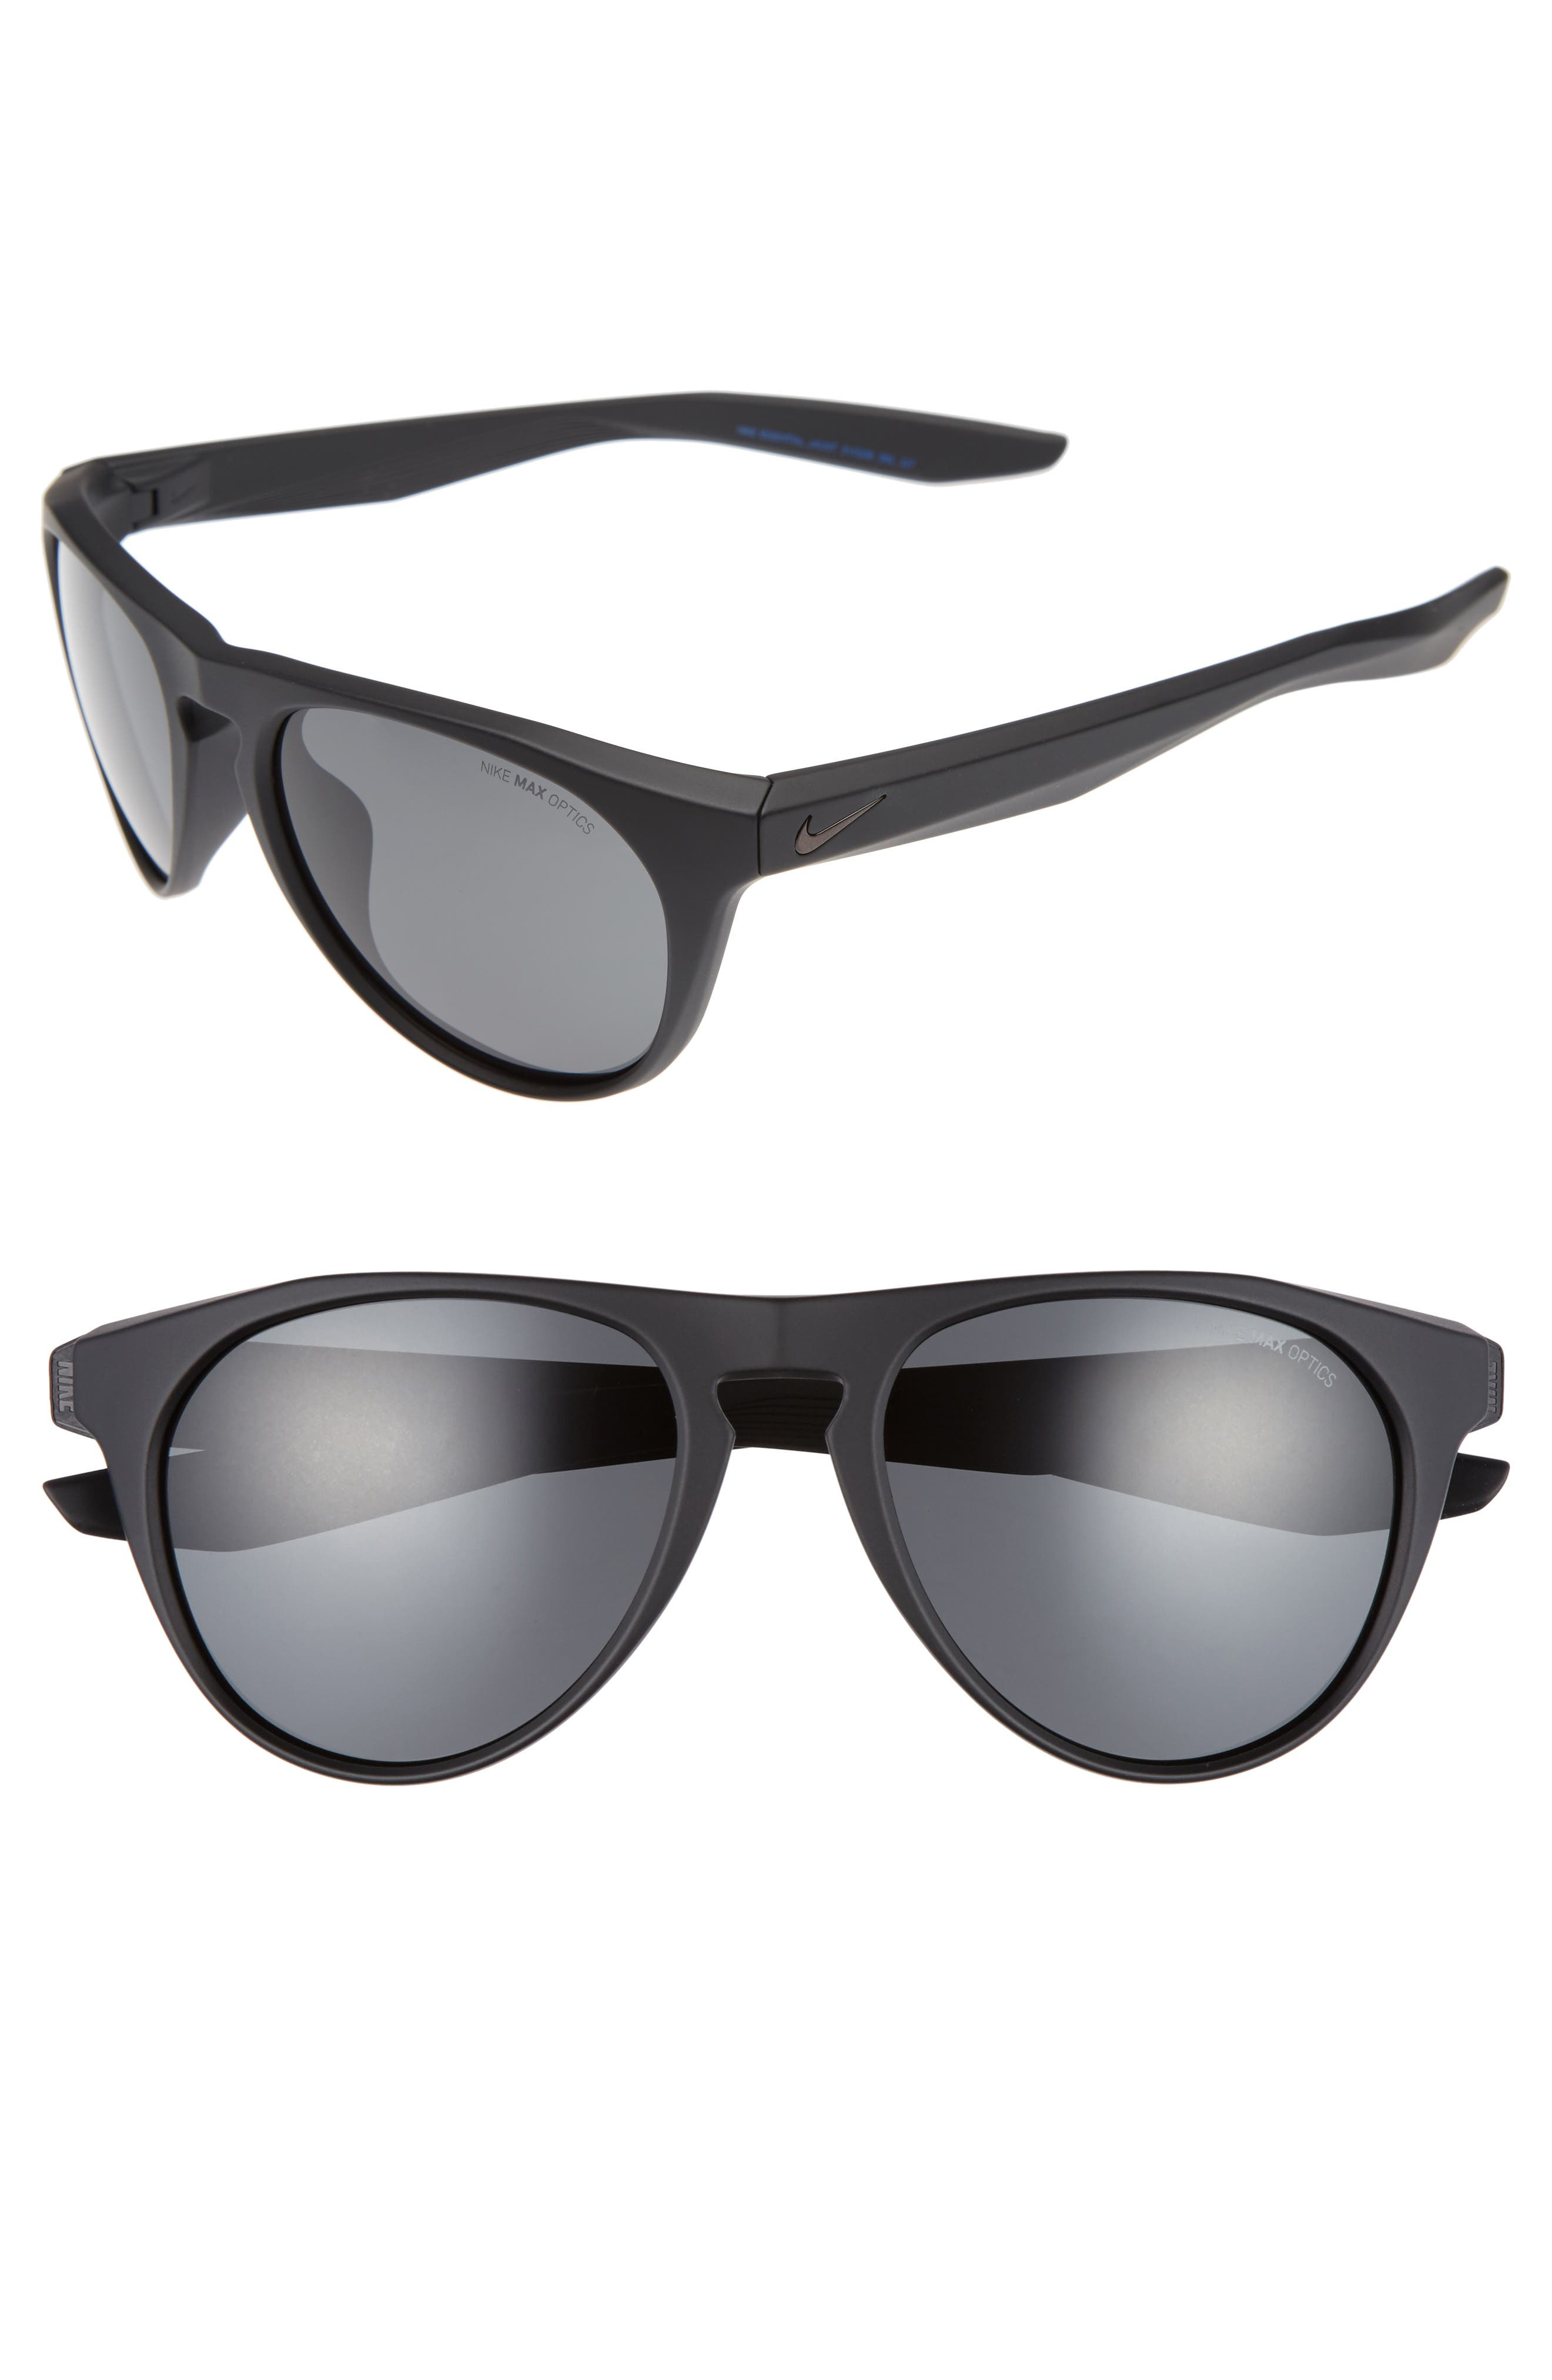 Essential Jaunt 56mm Sunglasses,                             Main thumbnail 1, color,                             MATTE BLACK